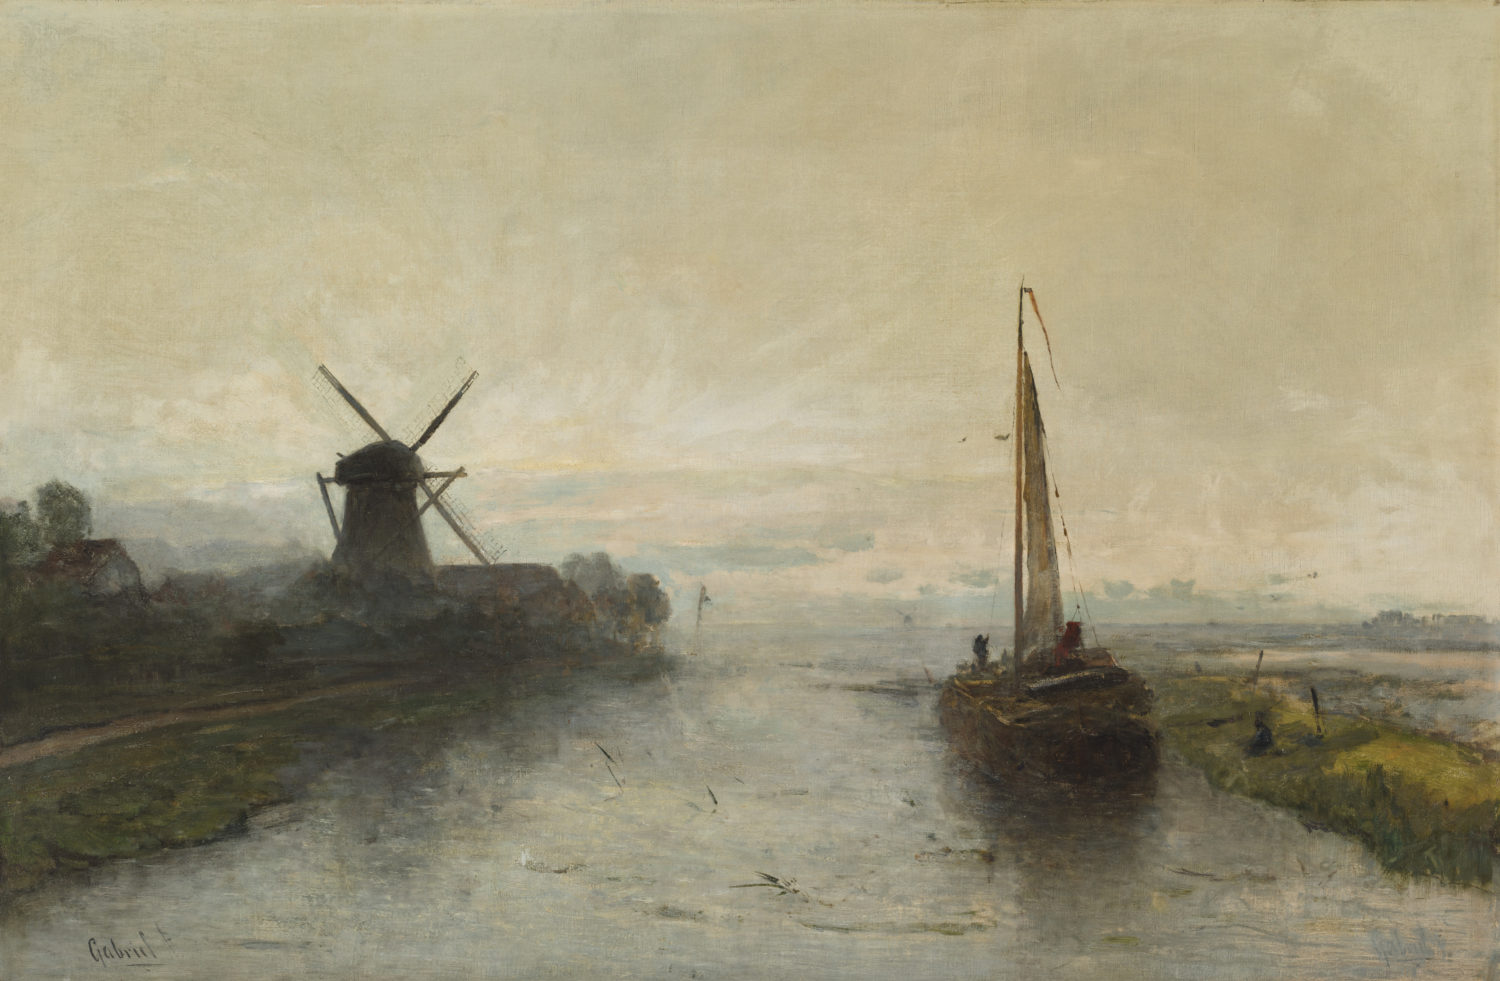 Paul Joseph Constantin ('Constant') Gabriël | A polder landscape with a boat and a windmill | Kunsthandel Bies | Bies Gallery